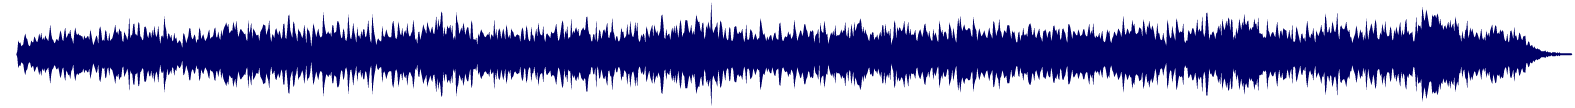 waveform of track #78056